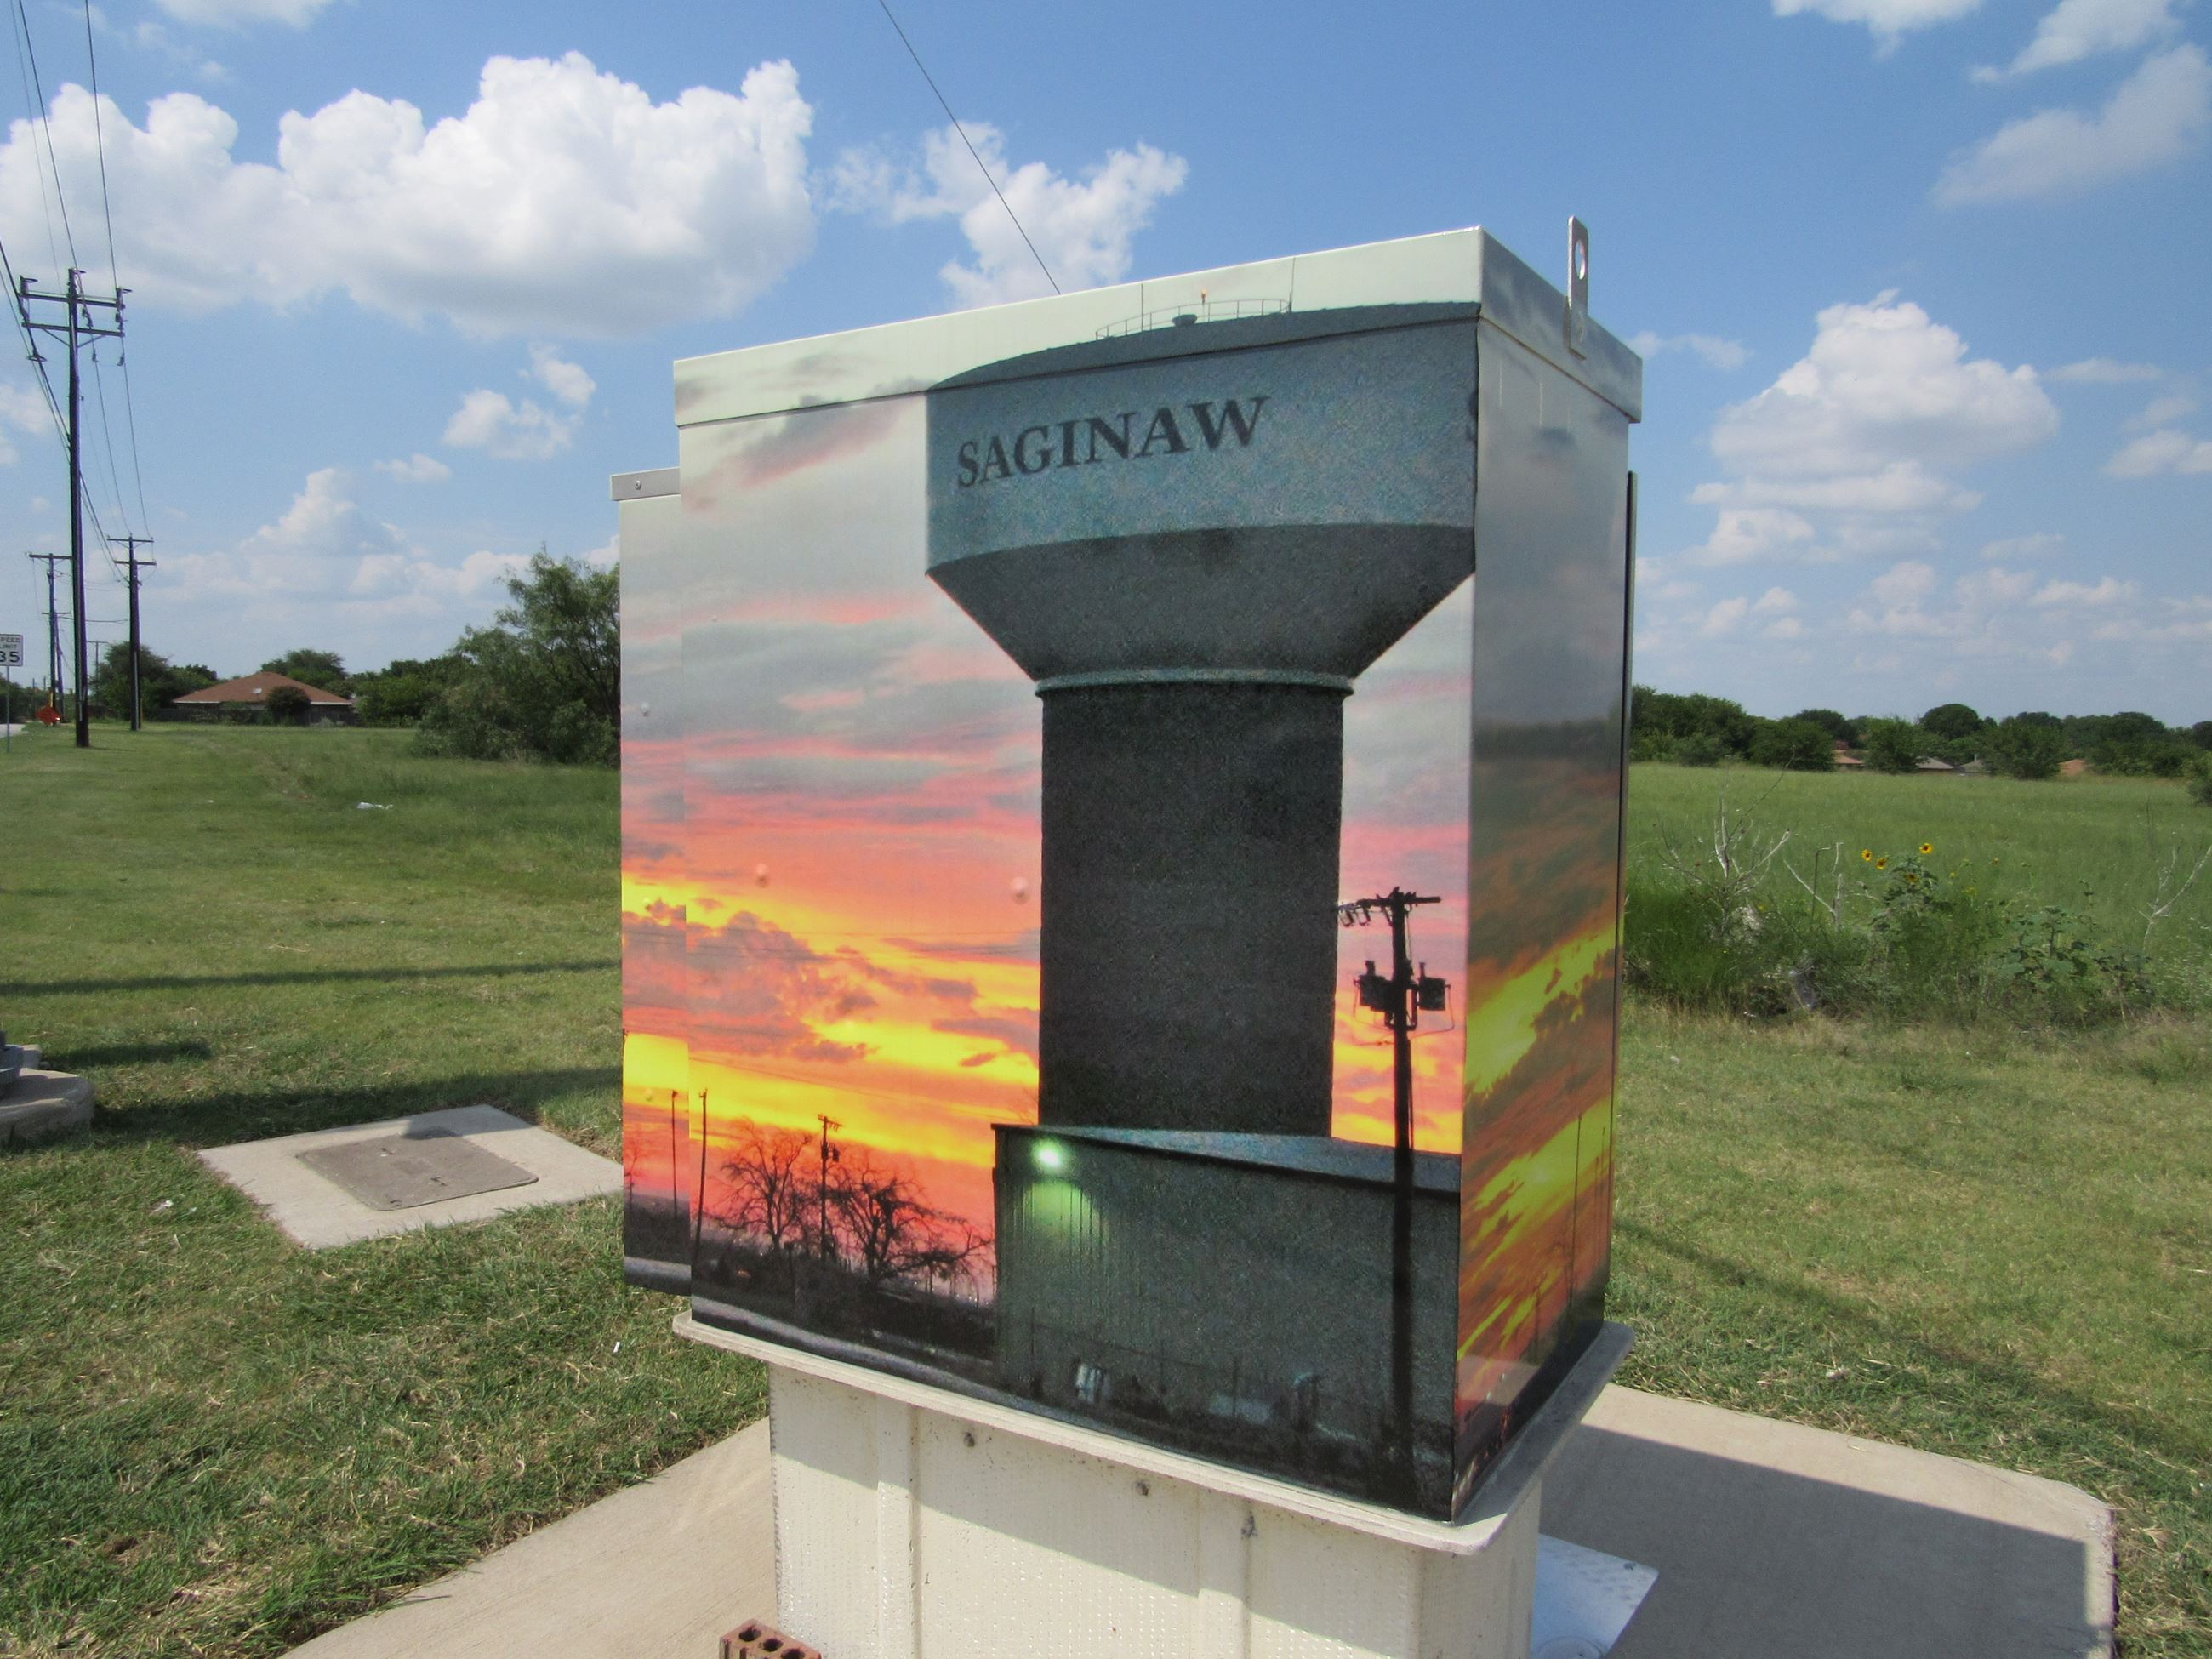 Traffic Control Box with Water Tower image